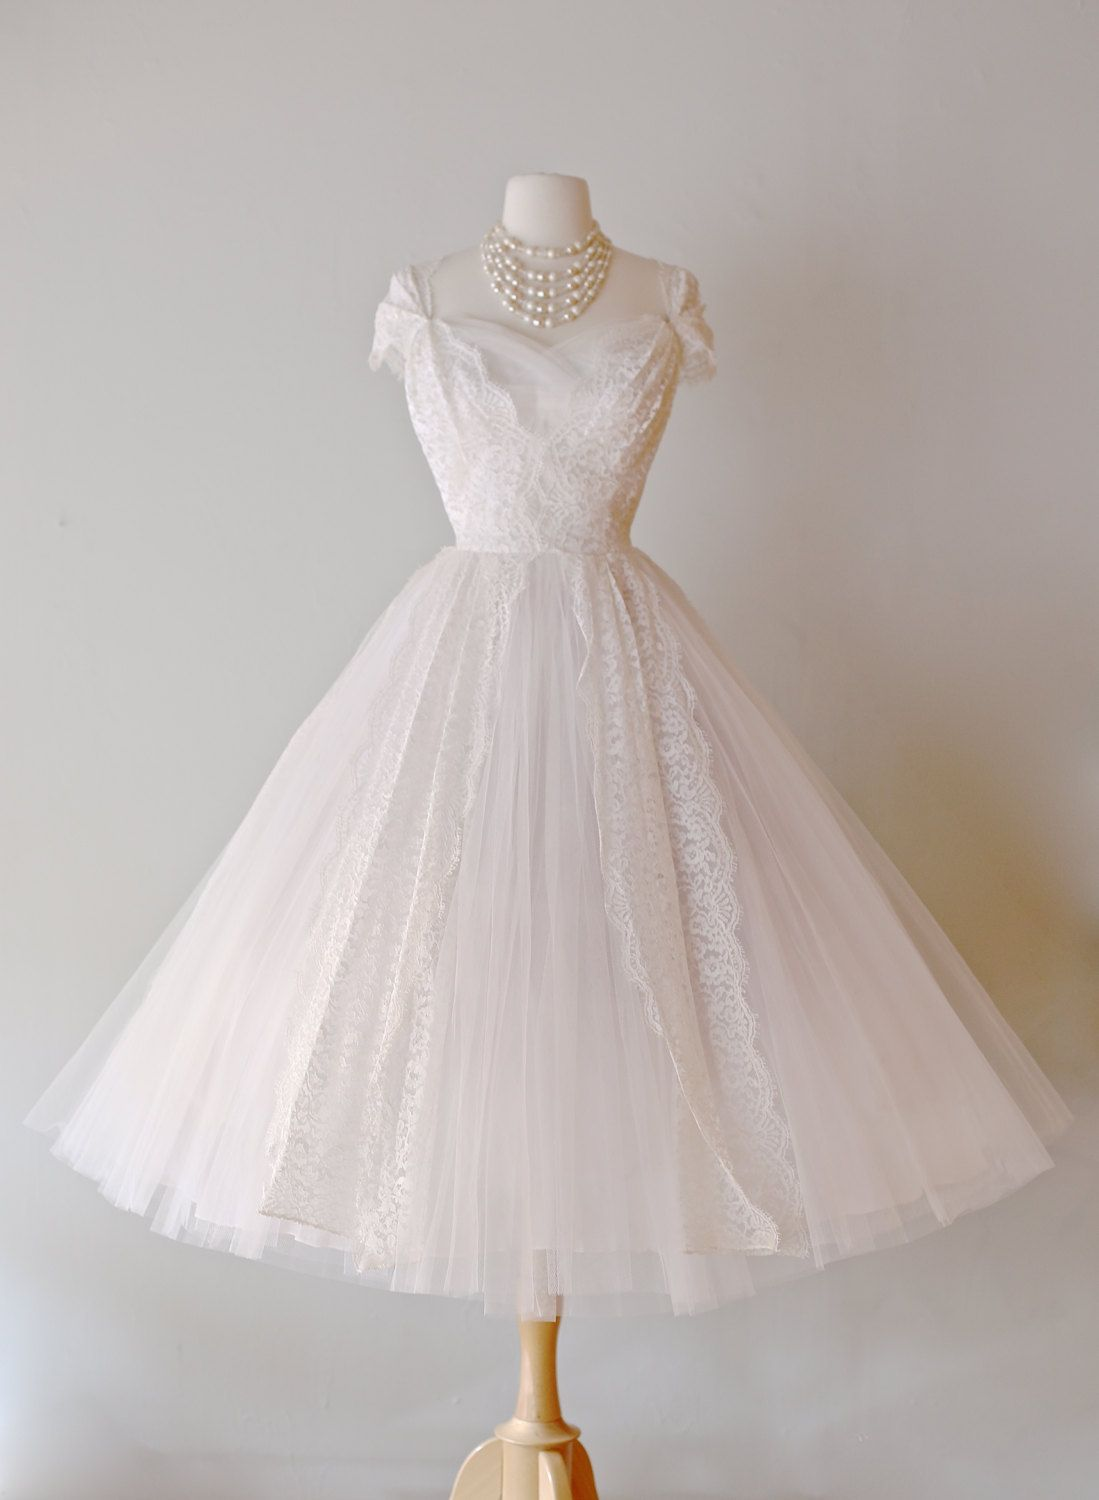 Beautiful 1950s Lace Tea Length Wedding Dress By Lorie Deb Vintage 50s And Tulle Ballerina Xtabayvintage On Etsy